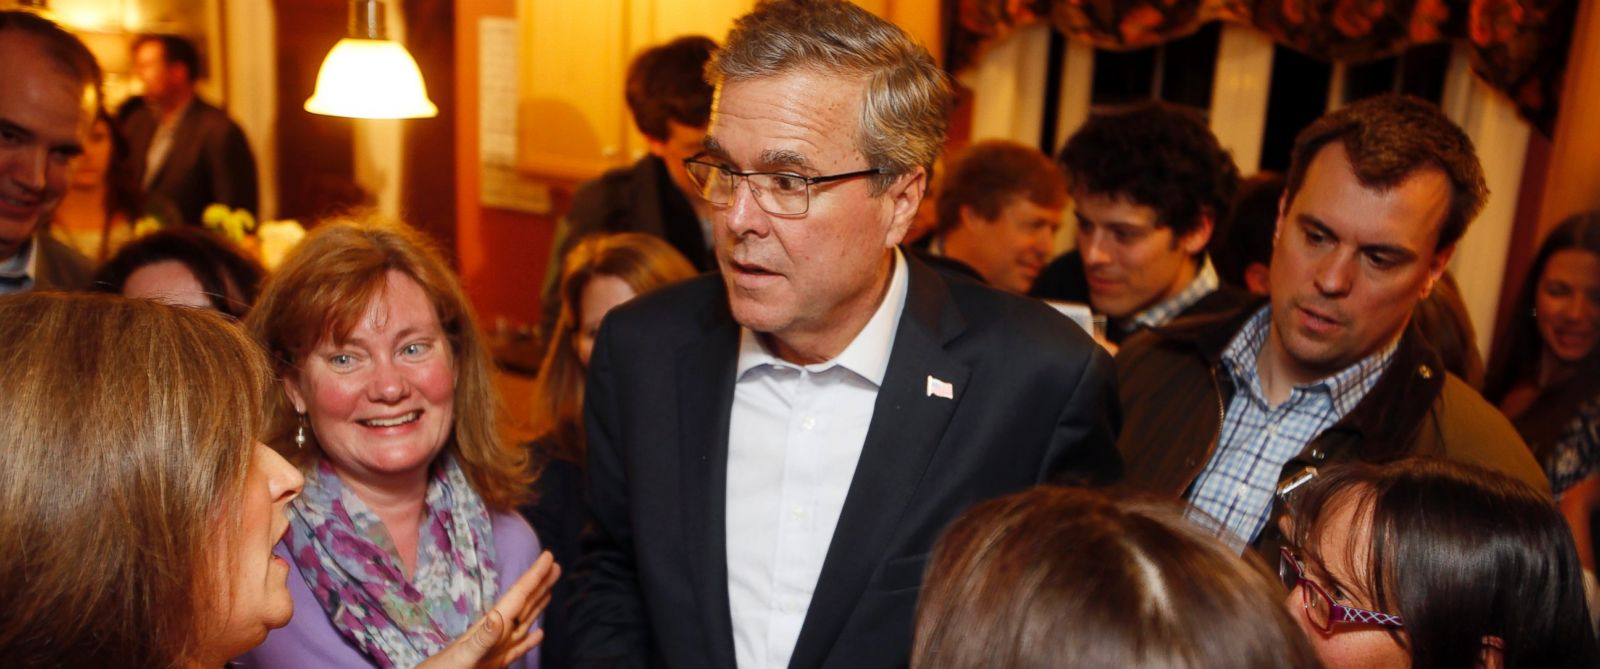 Florida Gov. Jeb Bush speaks with area residents at a packed house party Friday, March 13, 2015, in Dover, N.H.